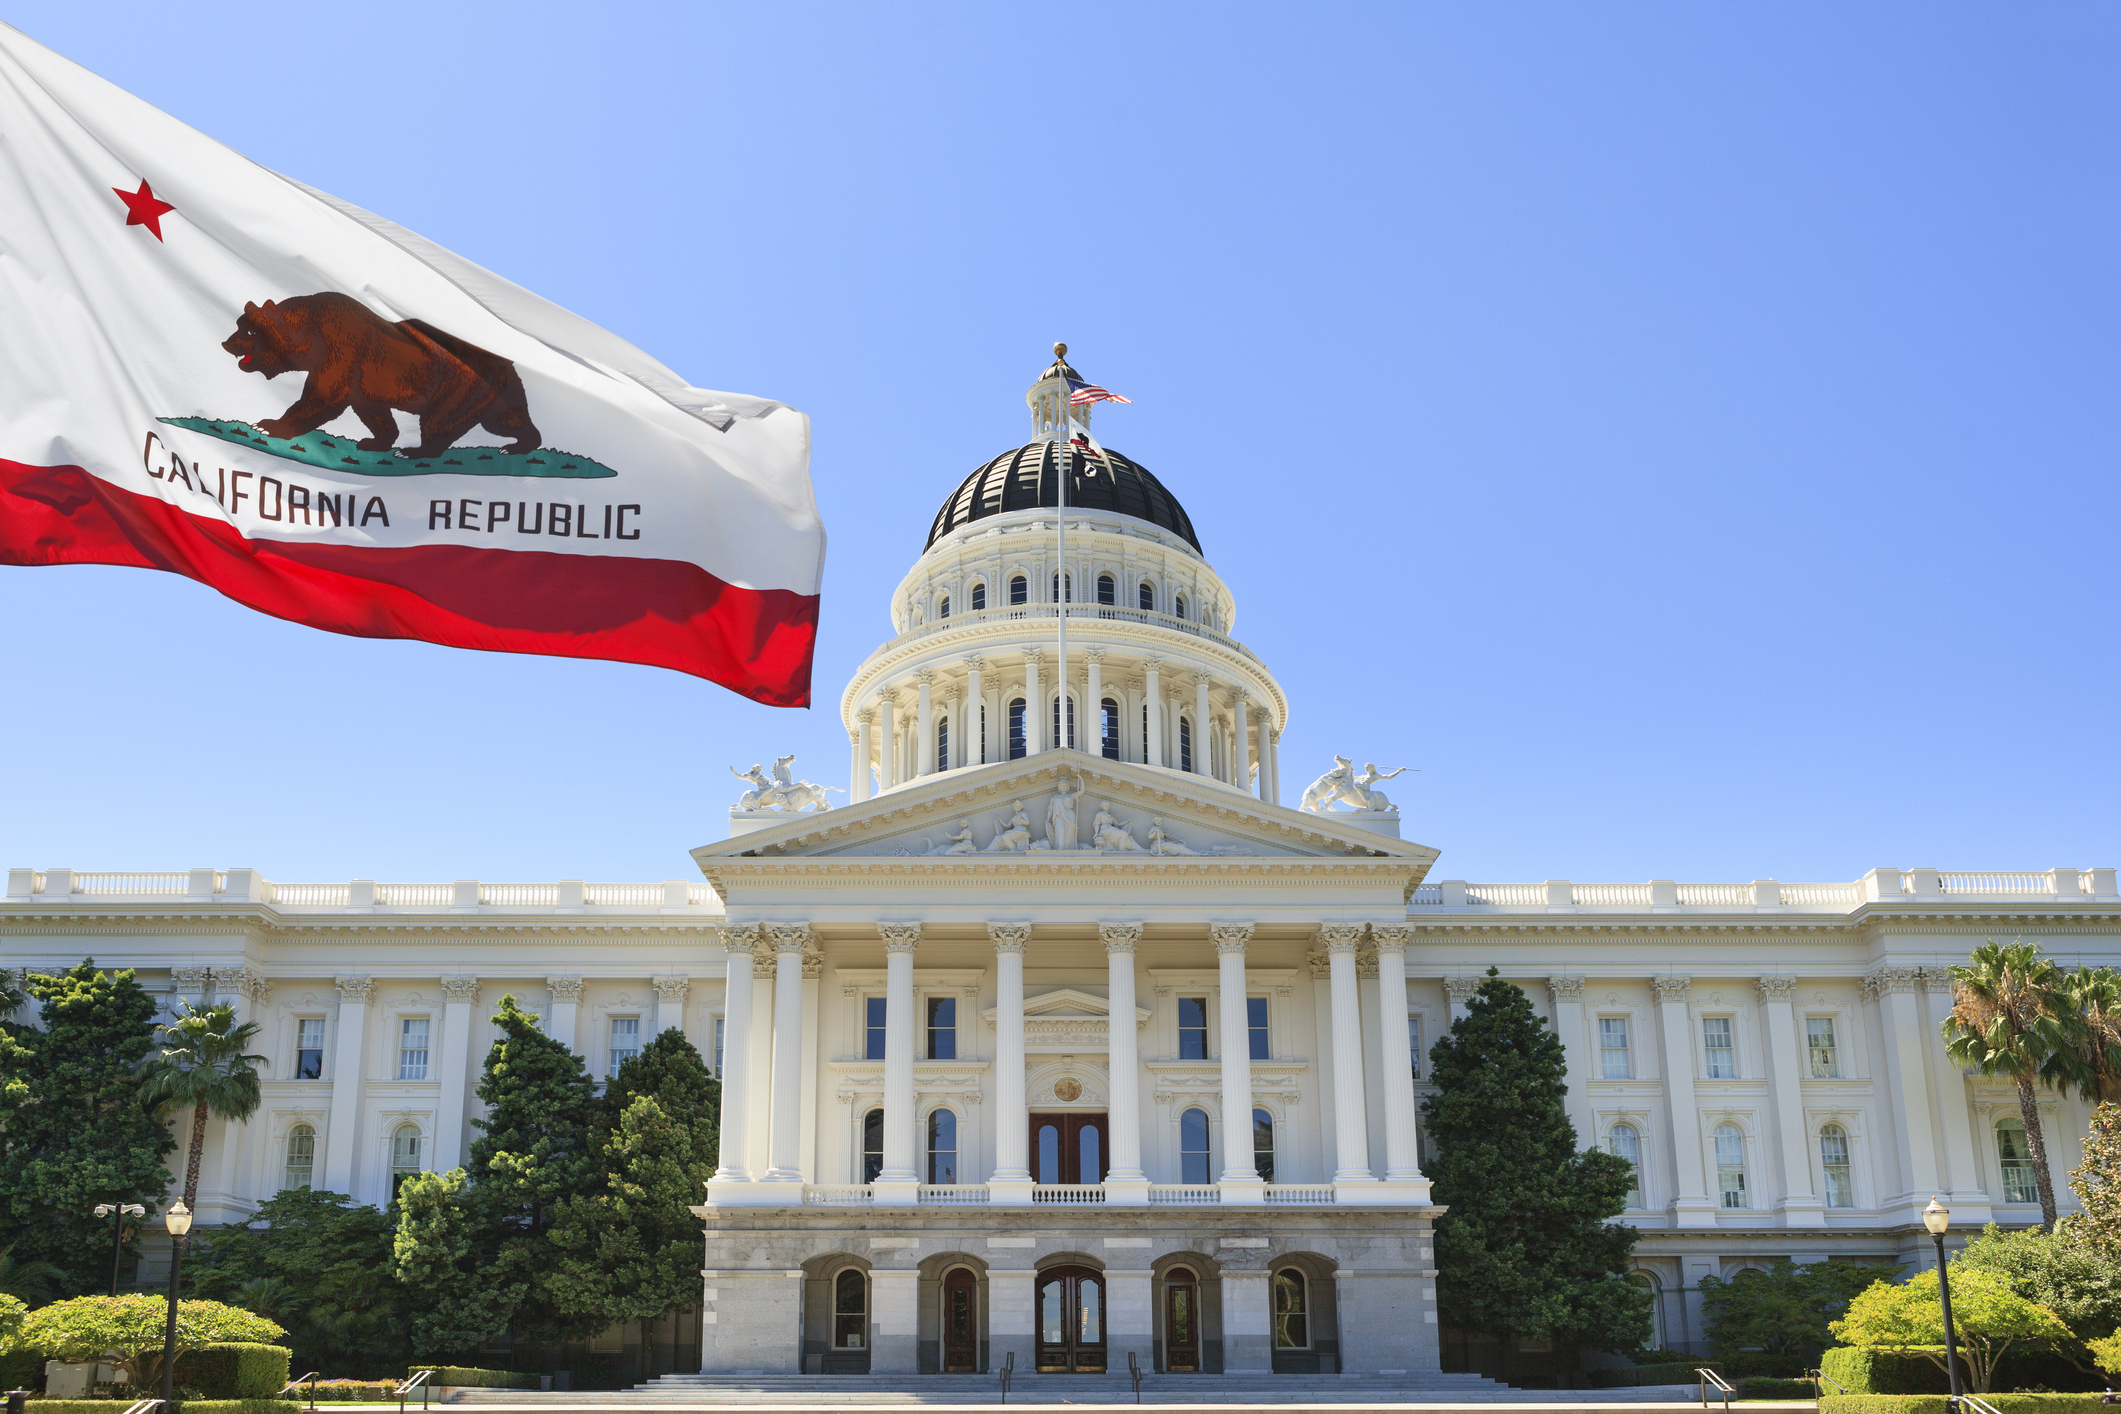 California state flag flying in front of capital building in Sacramento